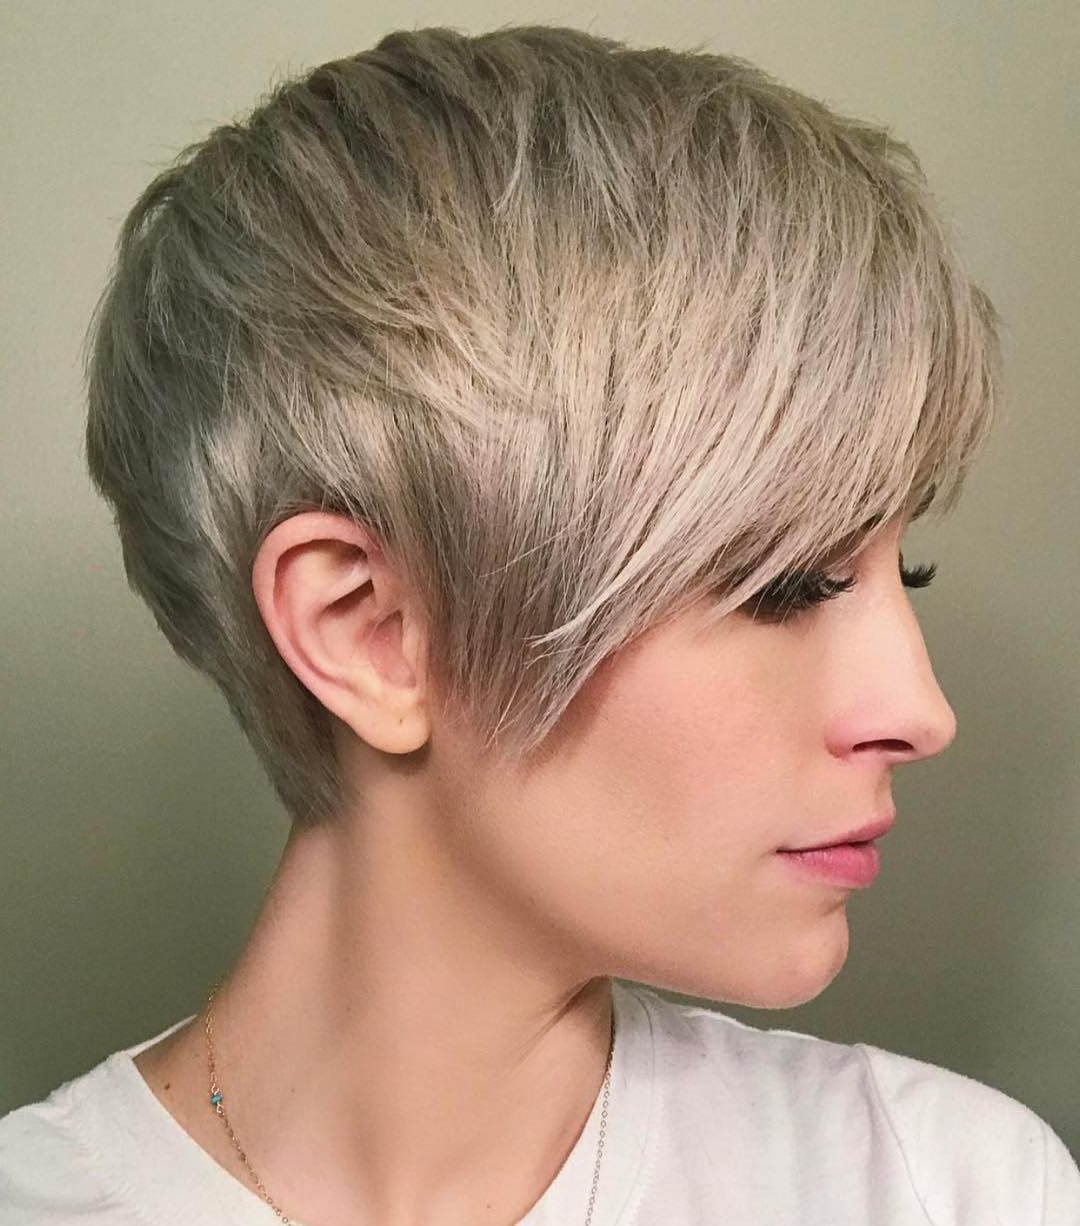 10 Best Short Straight Hairstyle Trends 2019 Intended For Long Blonde Pixie Haircuts With Root Fade (View 12 of 20)